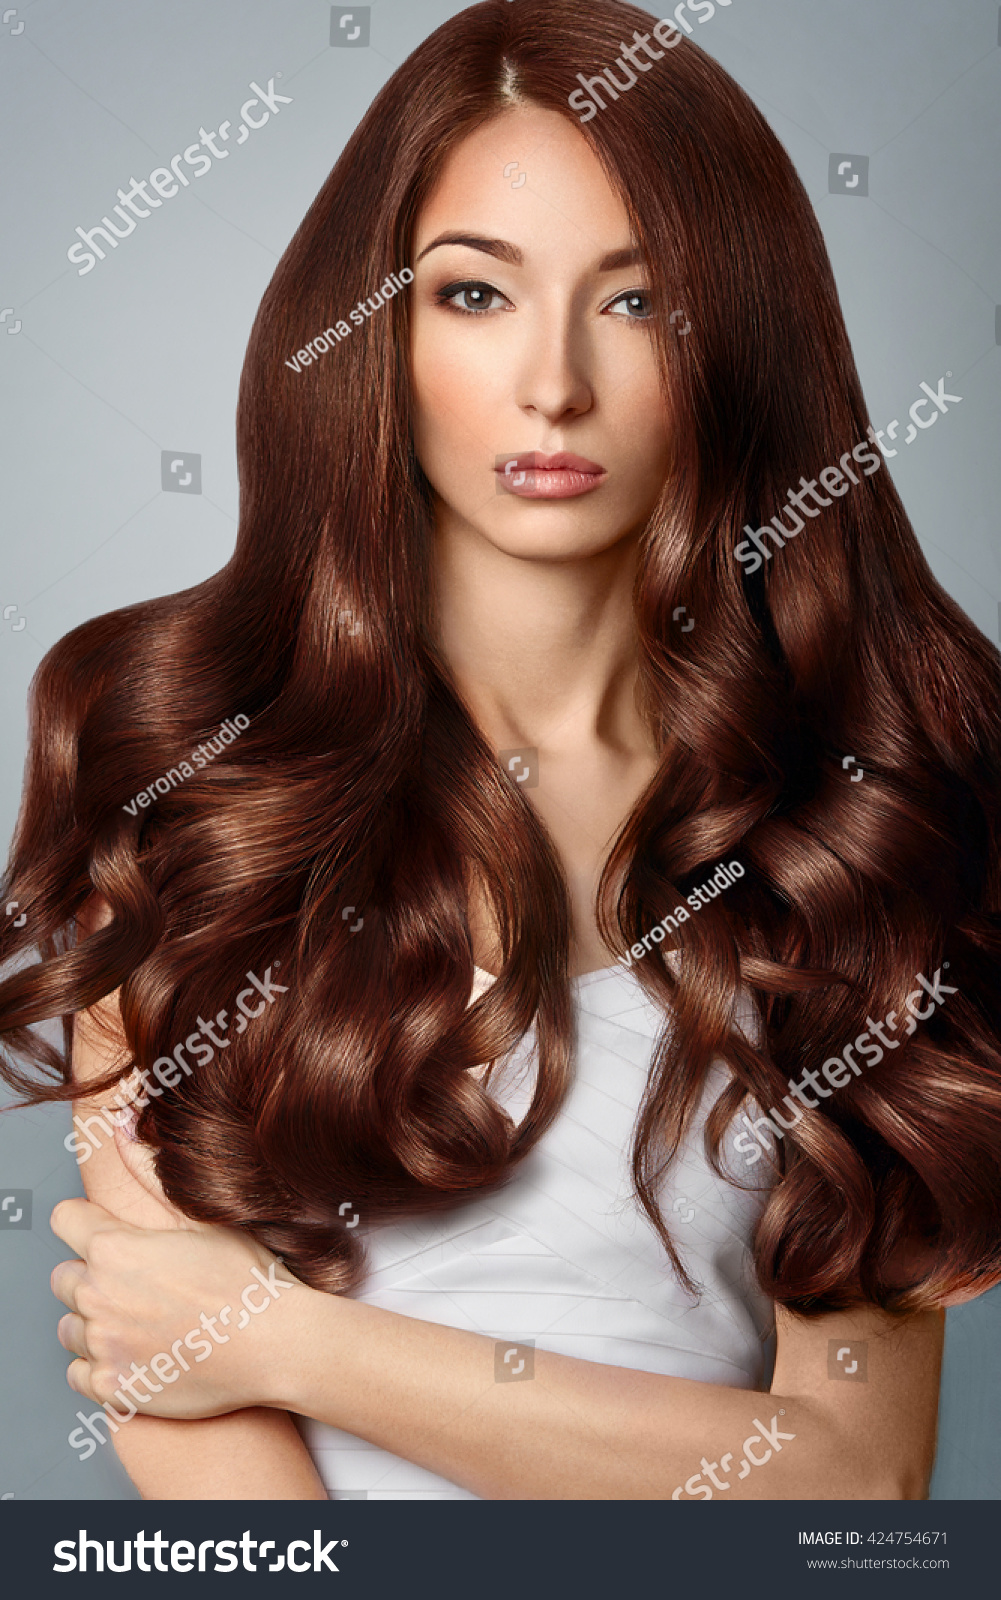 Healthy Brown Hair Beautiful Woman Gorgeous Stock Photo 424754671 Shutterstock